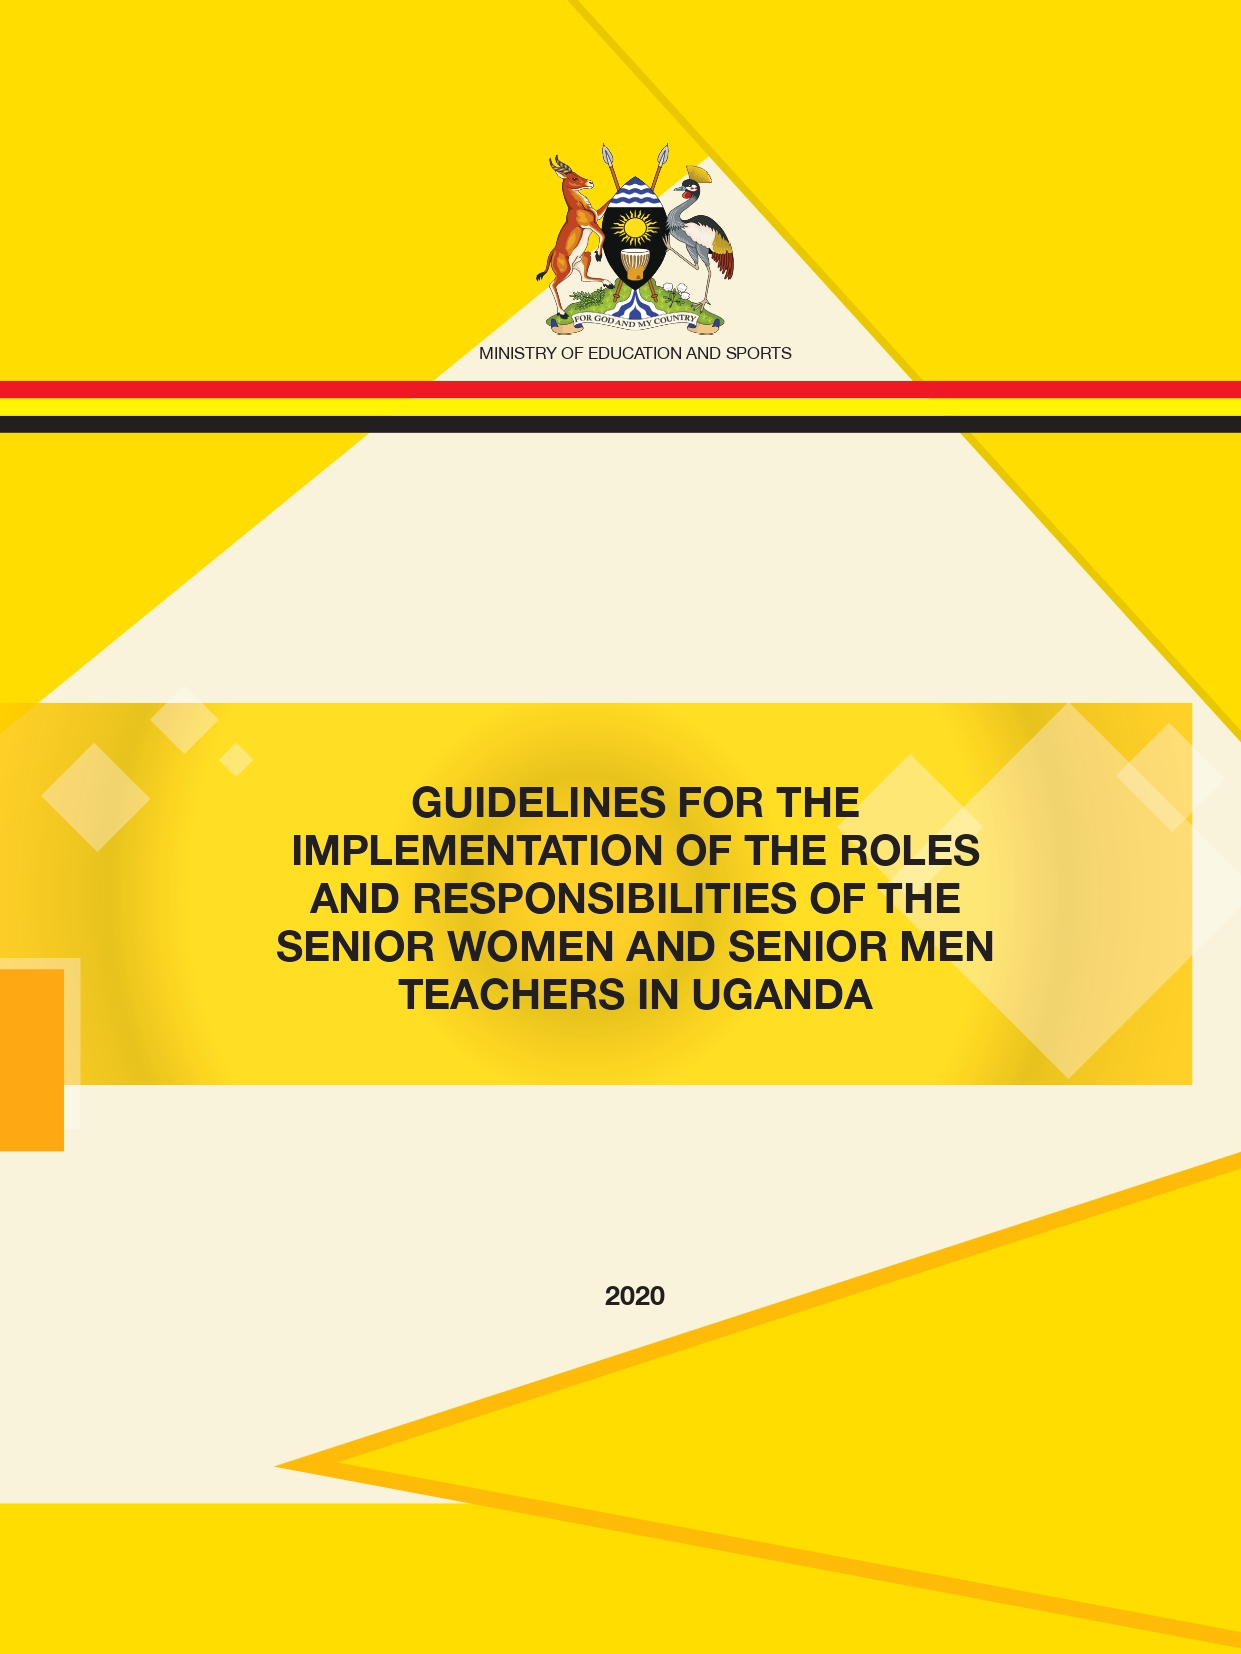 Guidelines for the Implementation of the Roles and Responsibilities of the Senior Women and Senior Men Teachers in Uganda